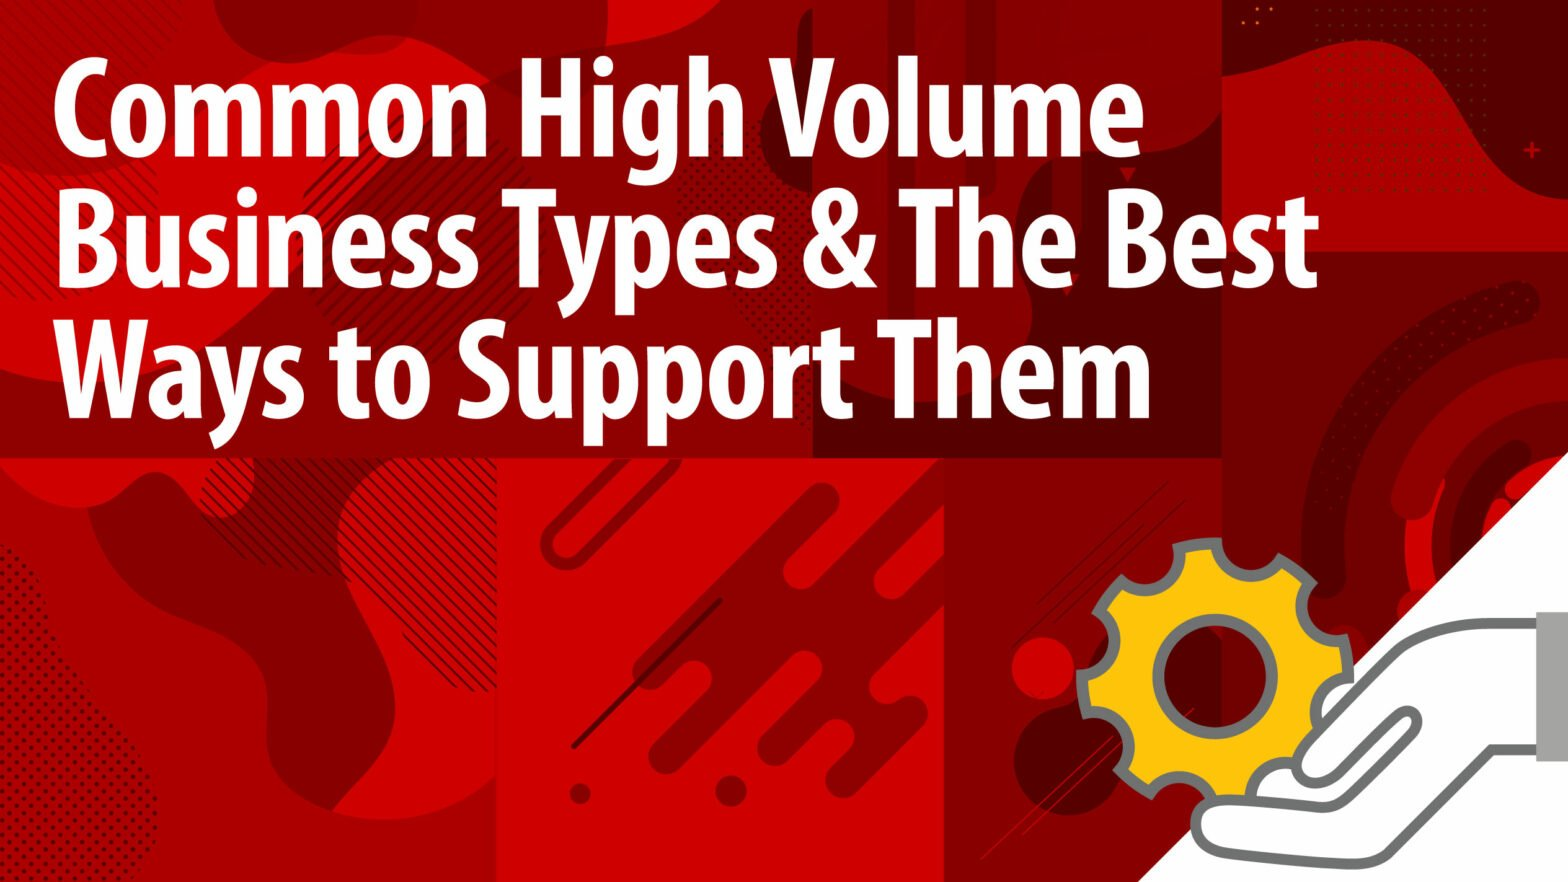 Common High Volume Types Article Header